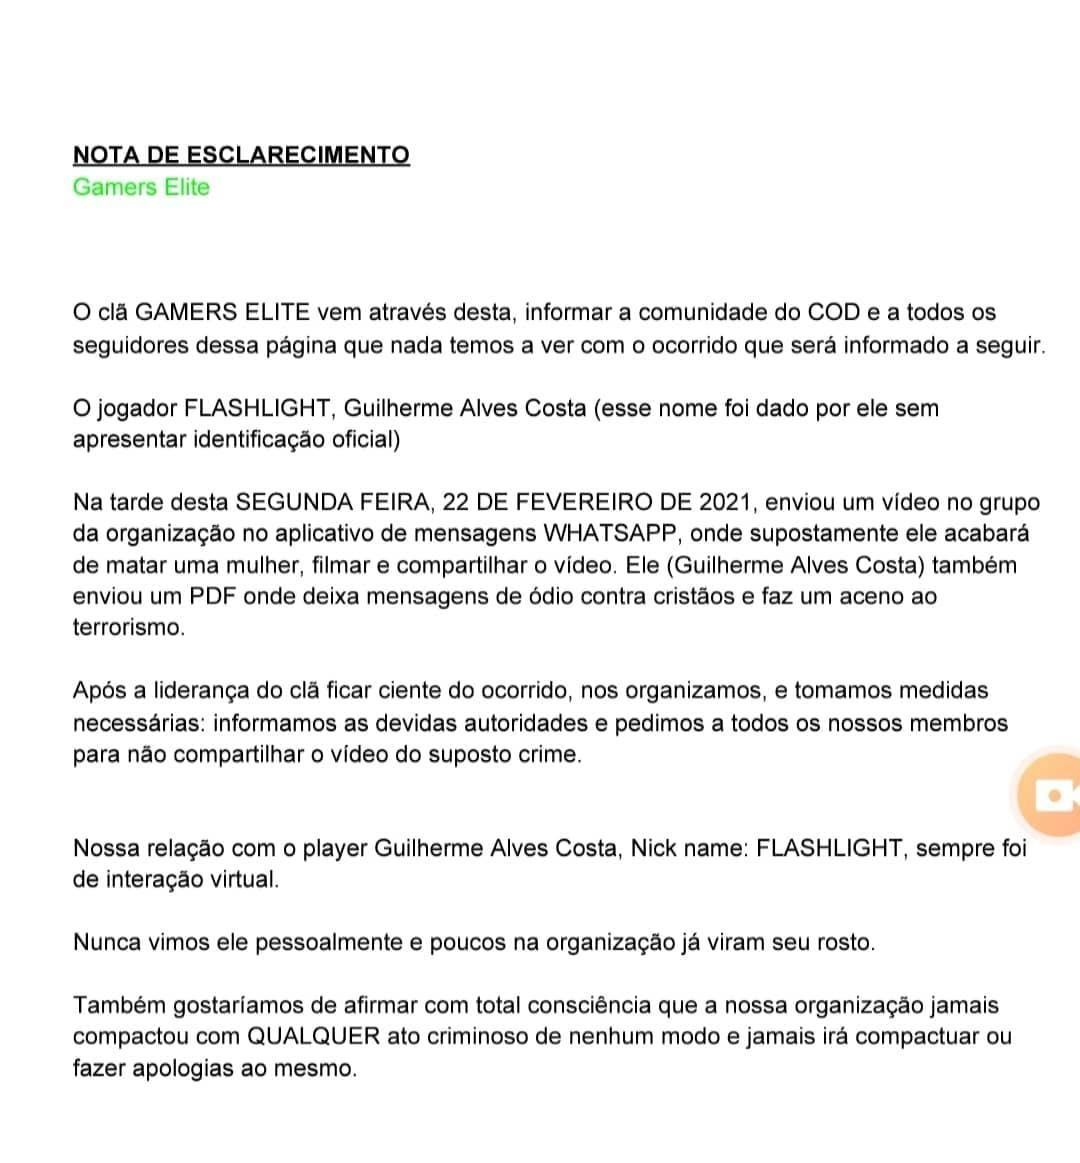 Comunicado Oficial de Gamers Elite.